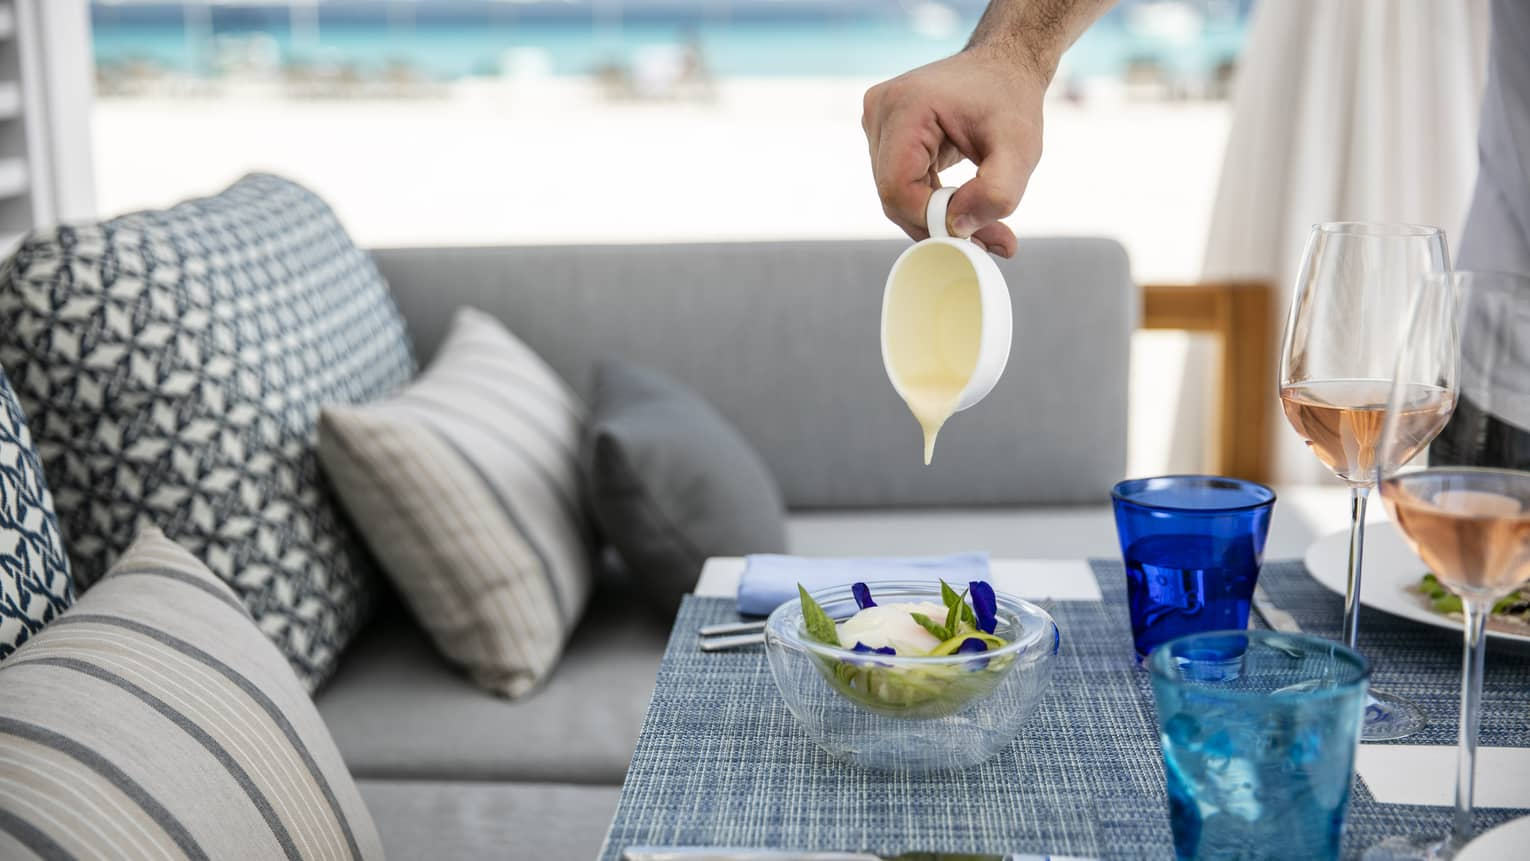 A person pouring some kind of glaze over a dish on a tastefully set table overlooking the ocean in Four Seasons Maldives - Landaa